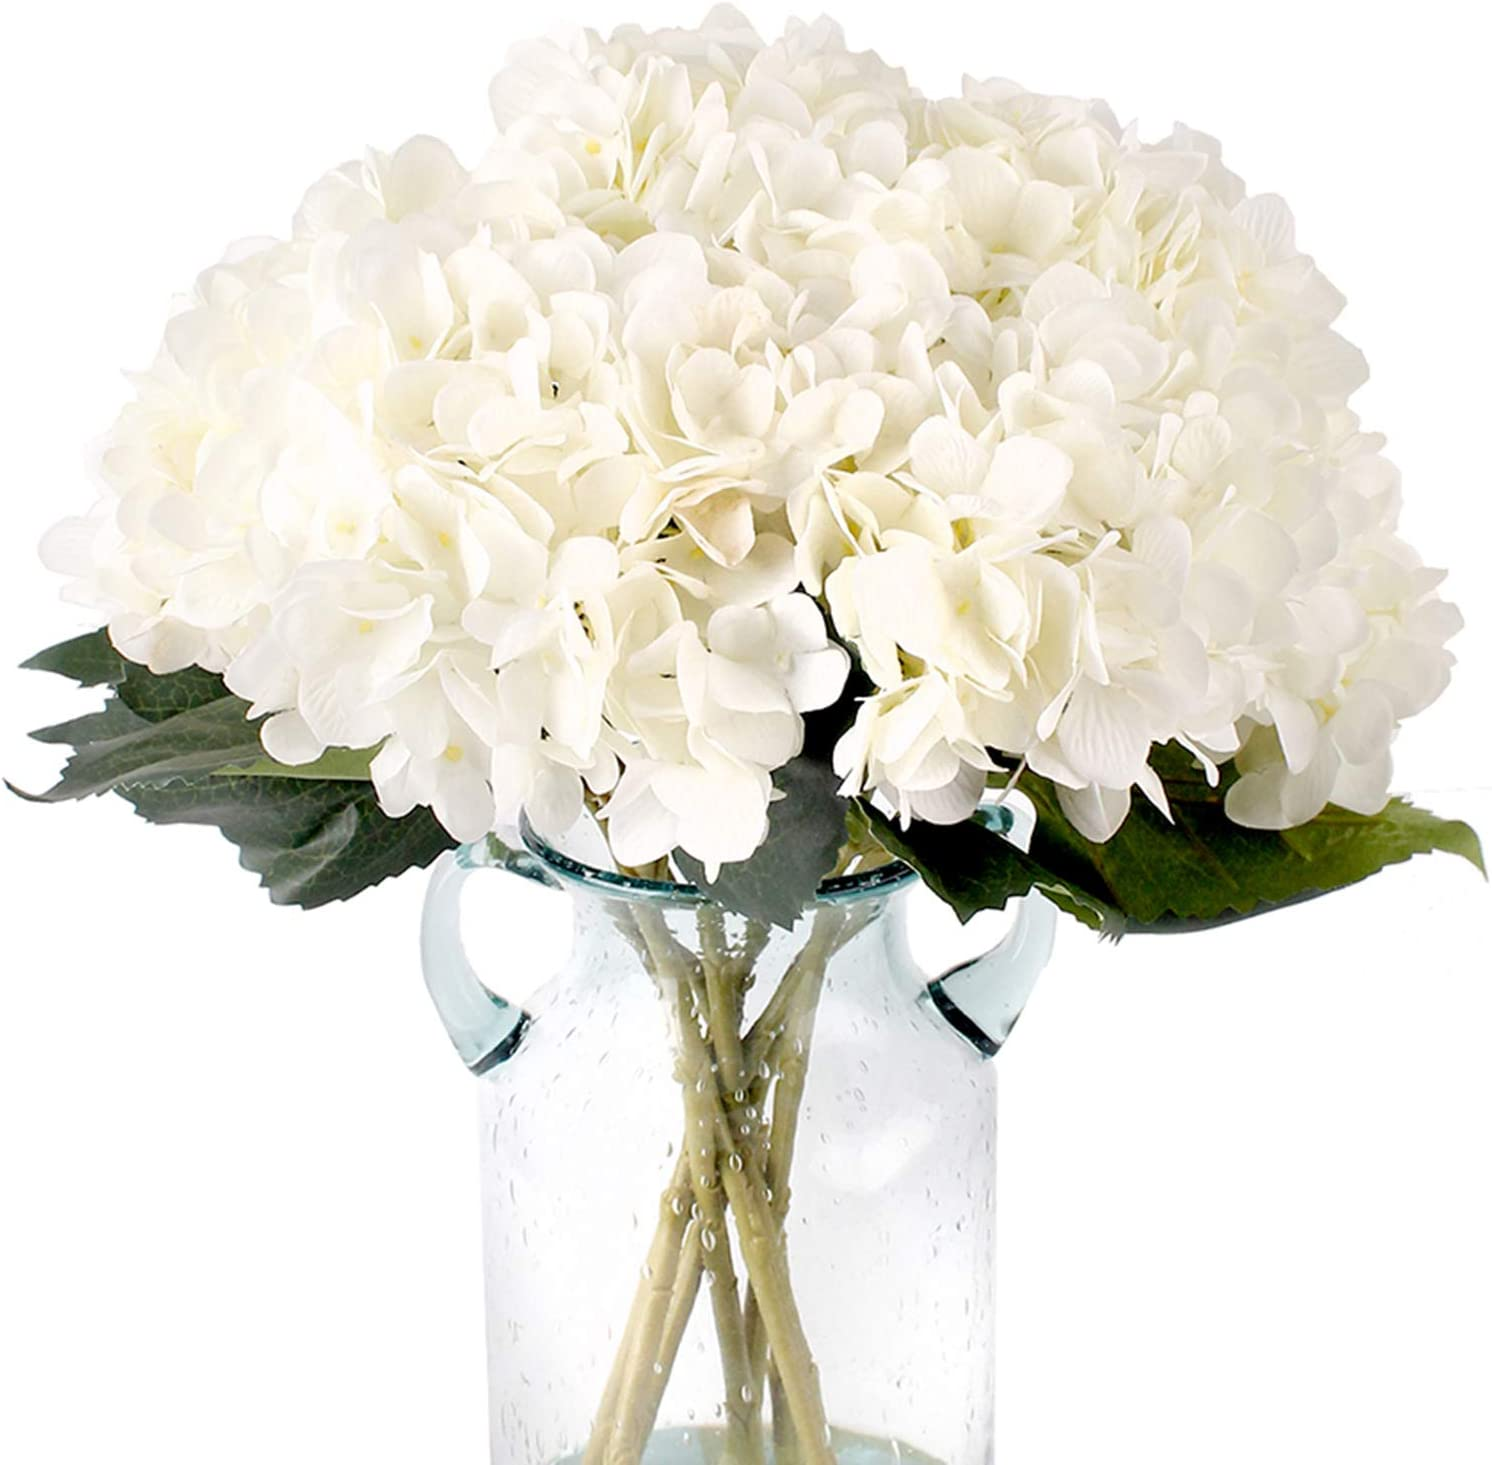 Fake White Flowers Artificial Silk Hydrangea Flowers Bouquets Faux Hydrangea Stems 3Pcs for Home Table Centerpieces Wedding Party Decoration (White)